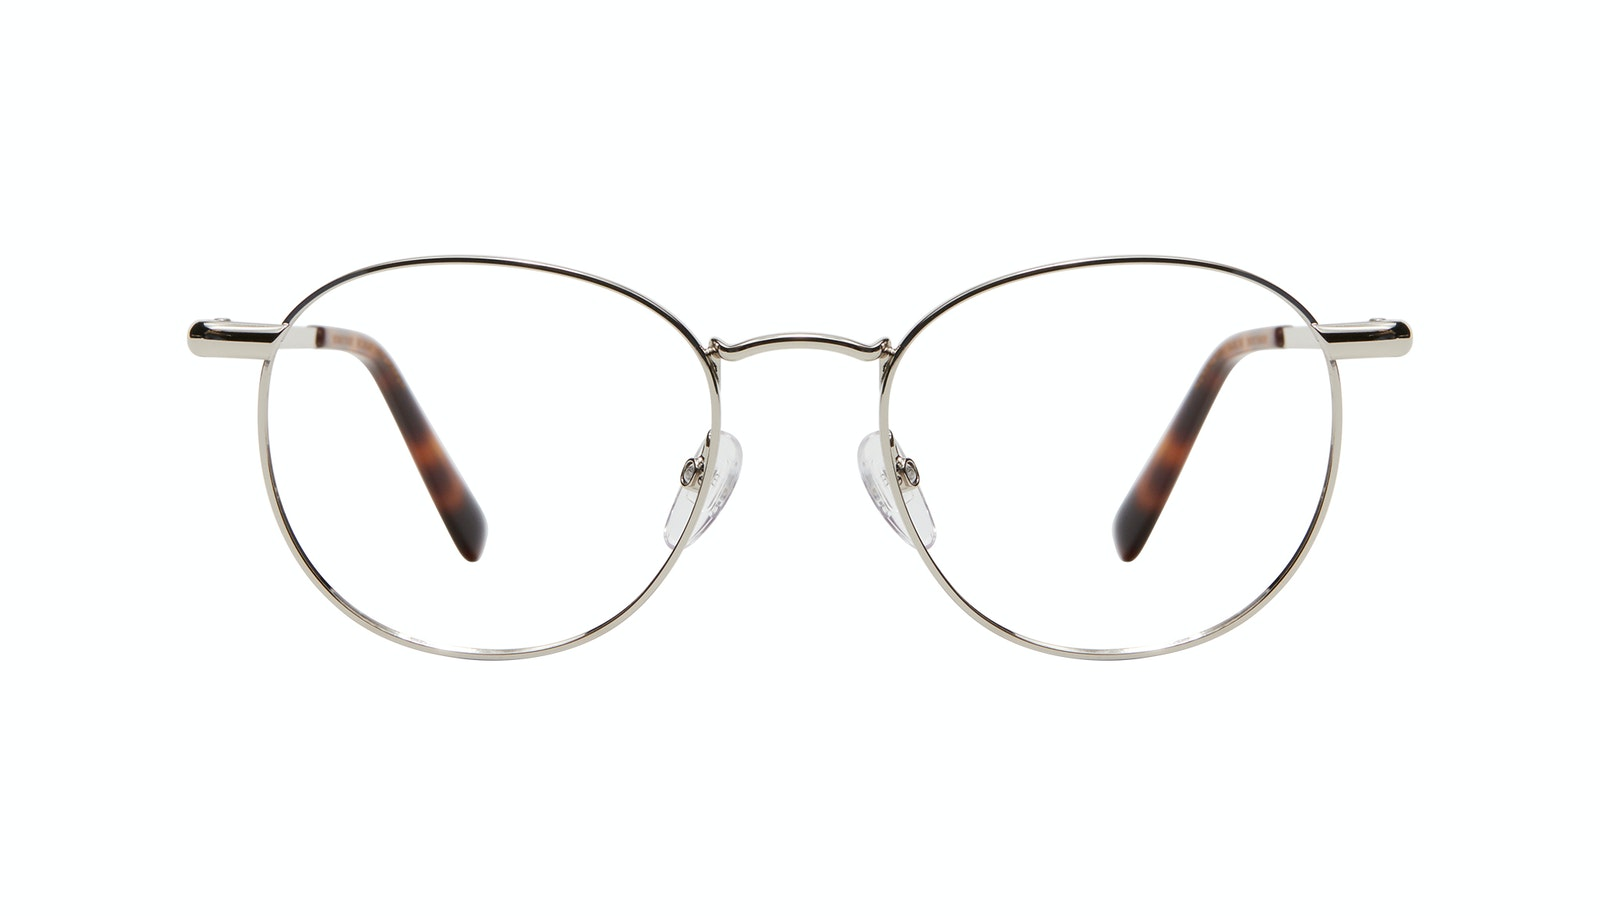 Affordable Fashion Glasses Round Eyeglasses Women Divine M Silver